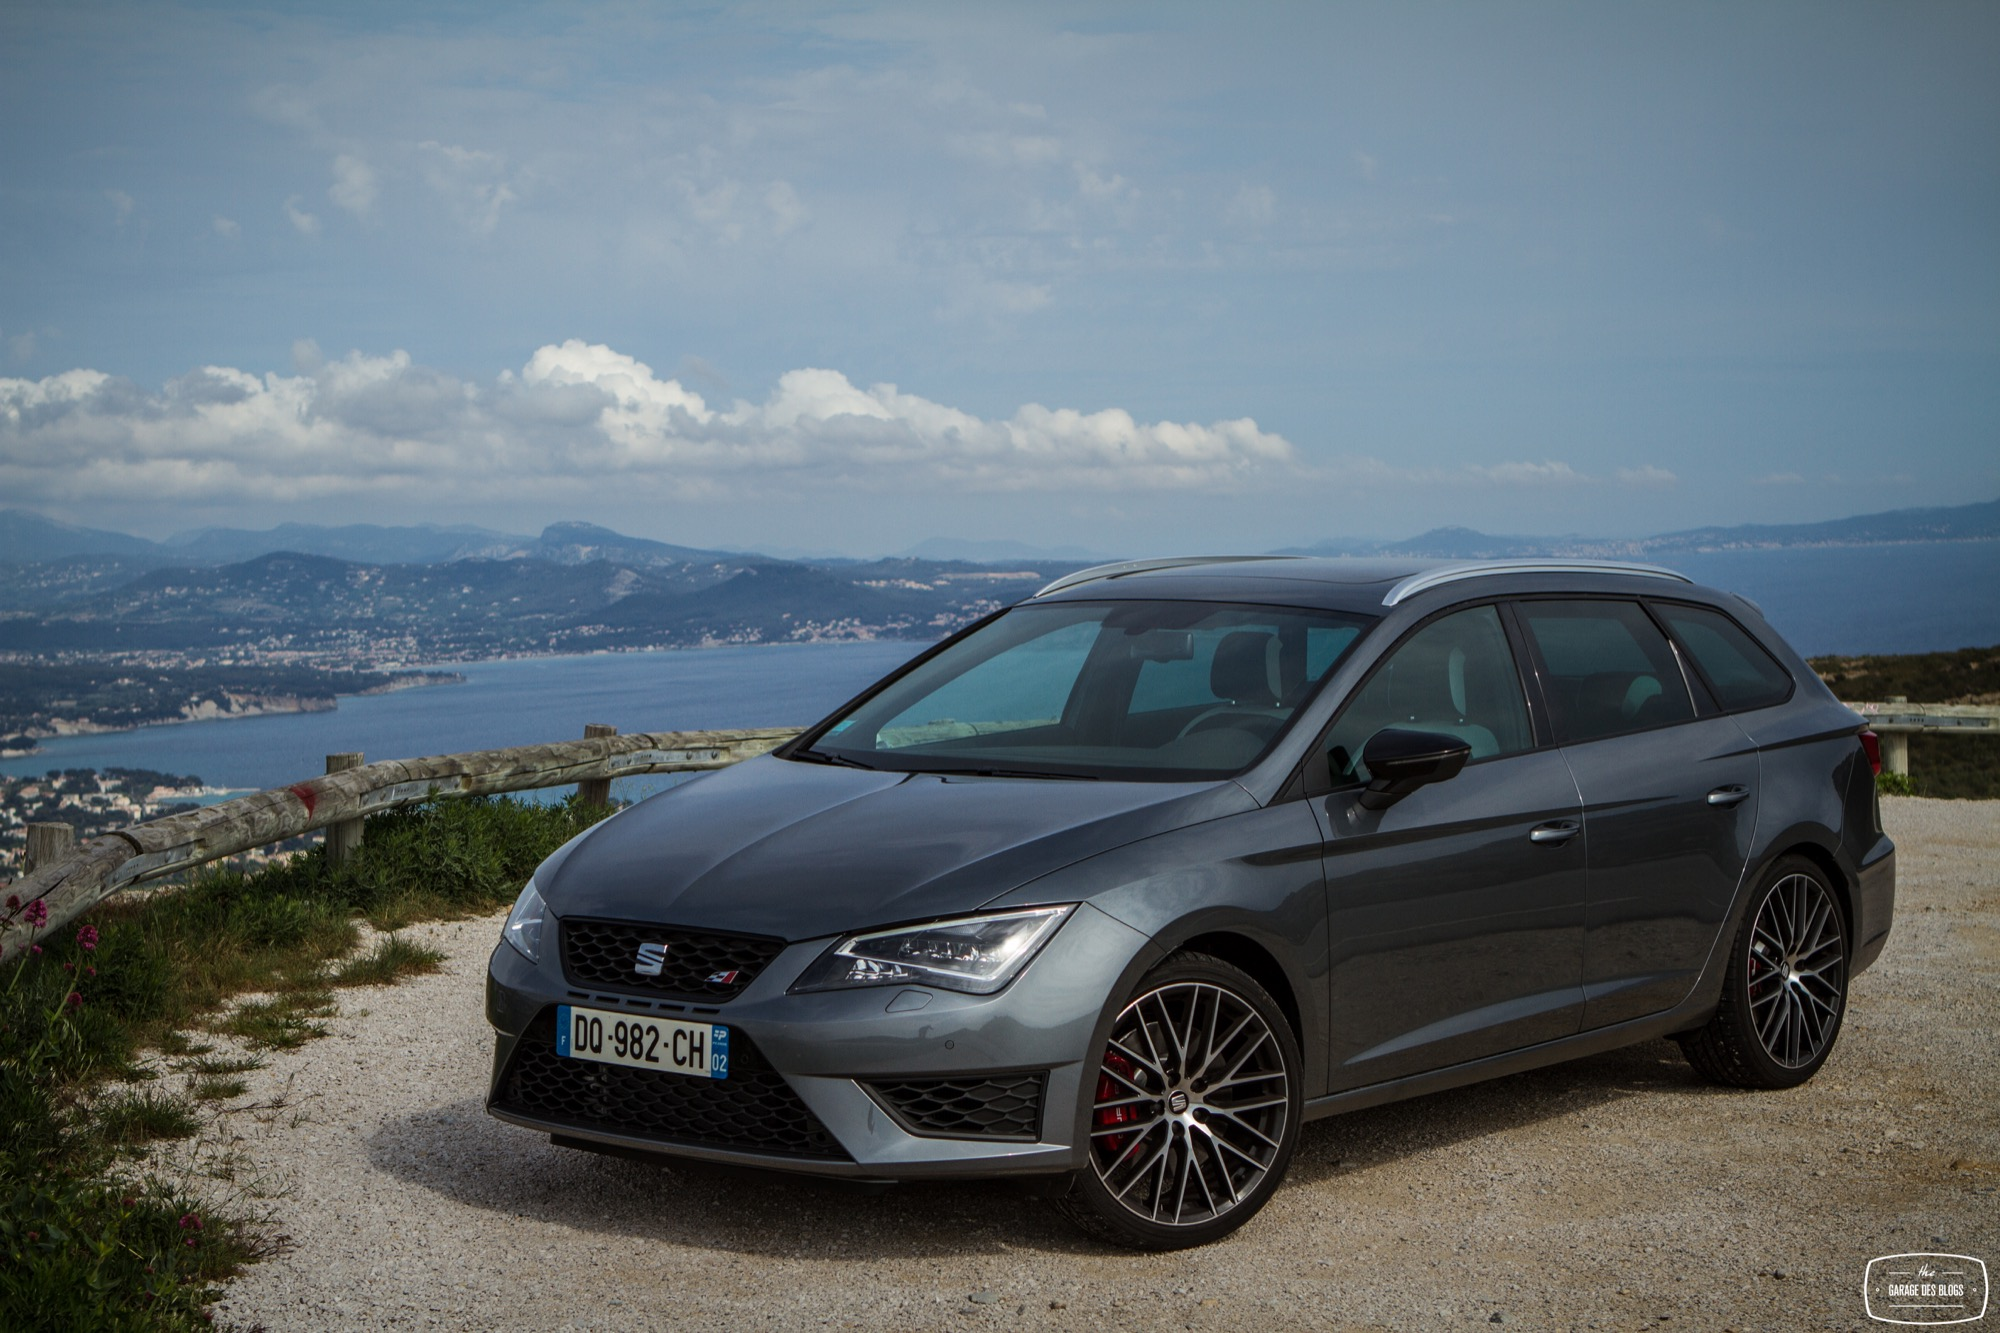 la seat leon st cupra sur le port et les routes de marseille. Black Bedroom Furniture Sets. Home Design Ideas